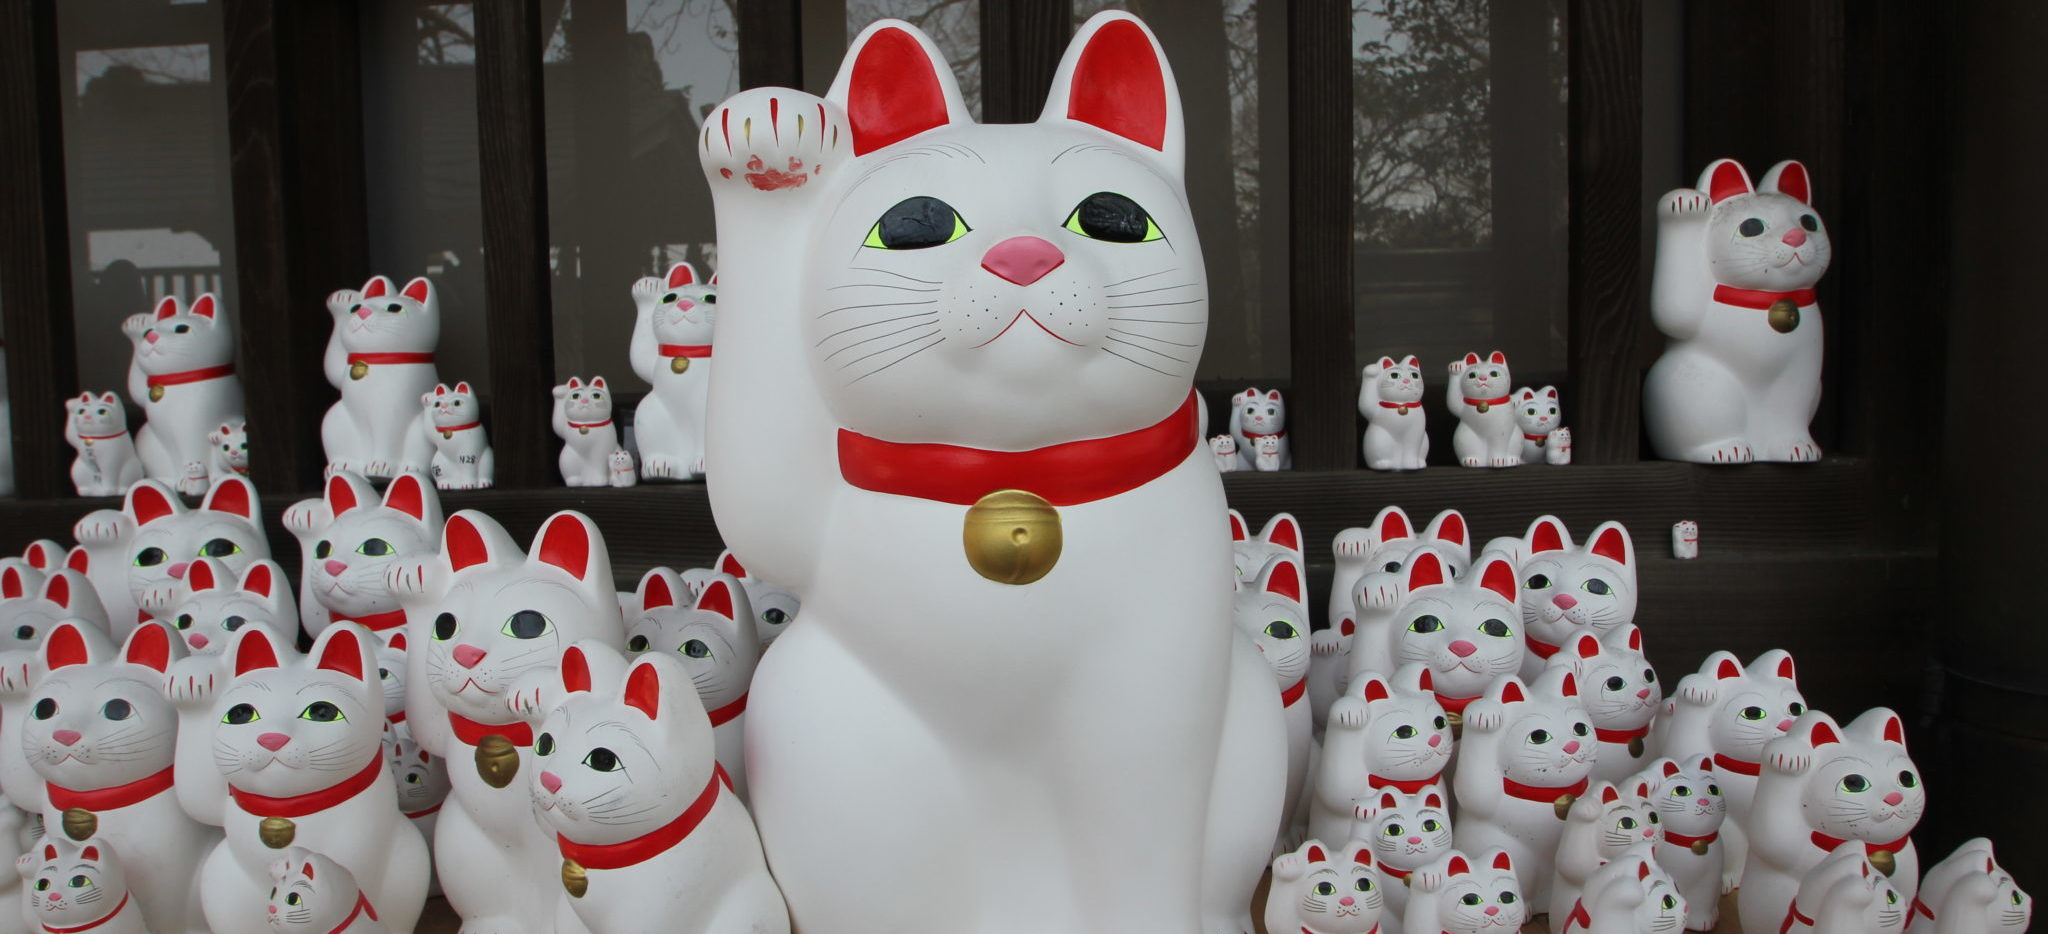 [Jeu] Association d'images - Page 2 Maneki-neko-1-2048x934